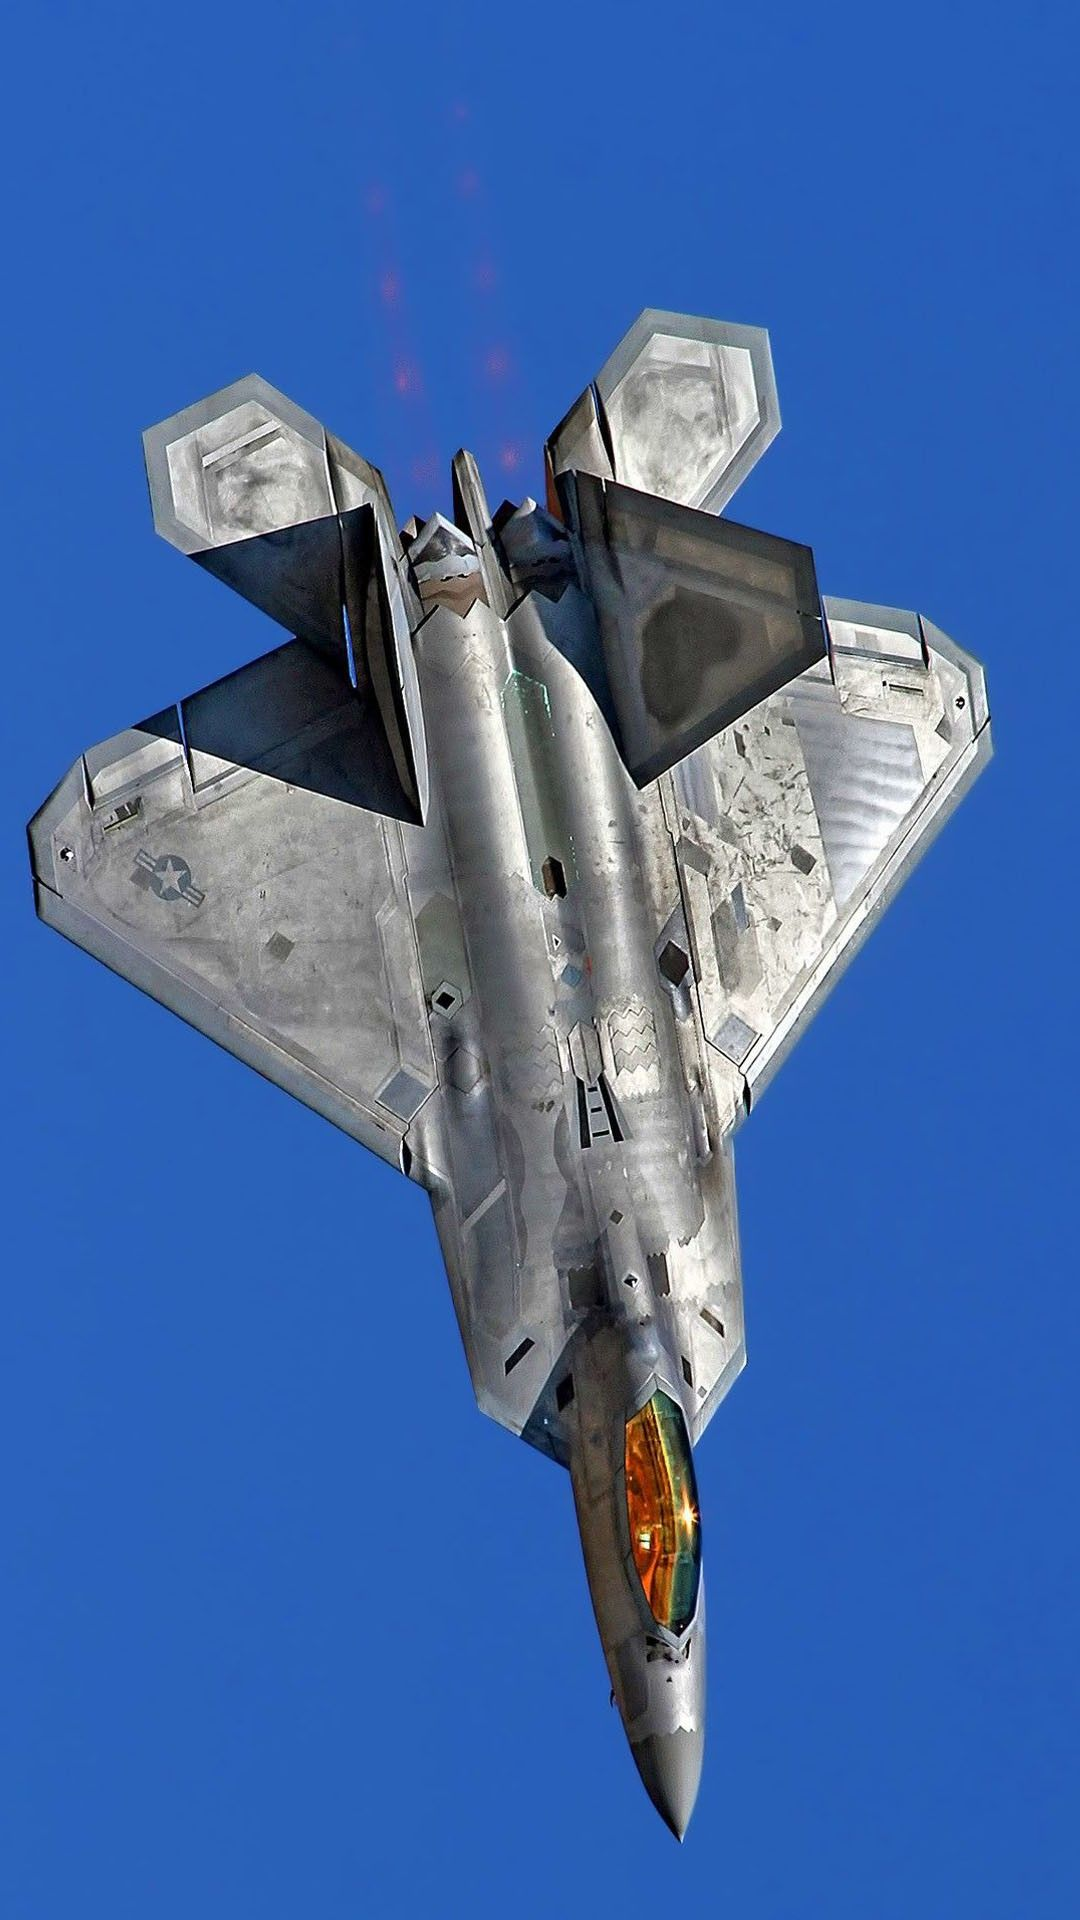 F22 Raptor Wallpapers 1080x1920 Jpg 1080 1920 Fighter Planes Stealth Aircraft Airplane Fighter